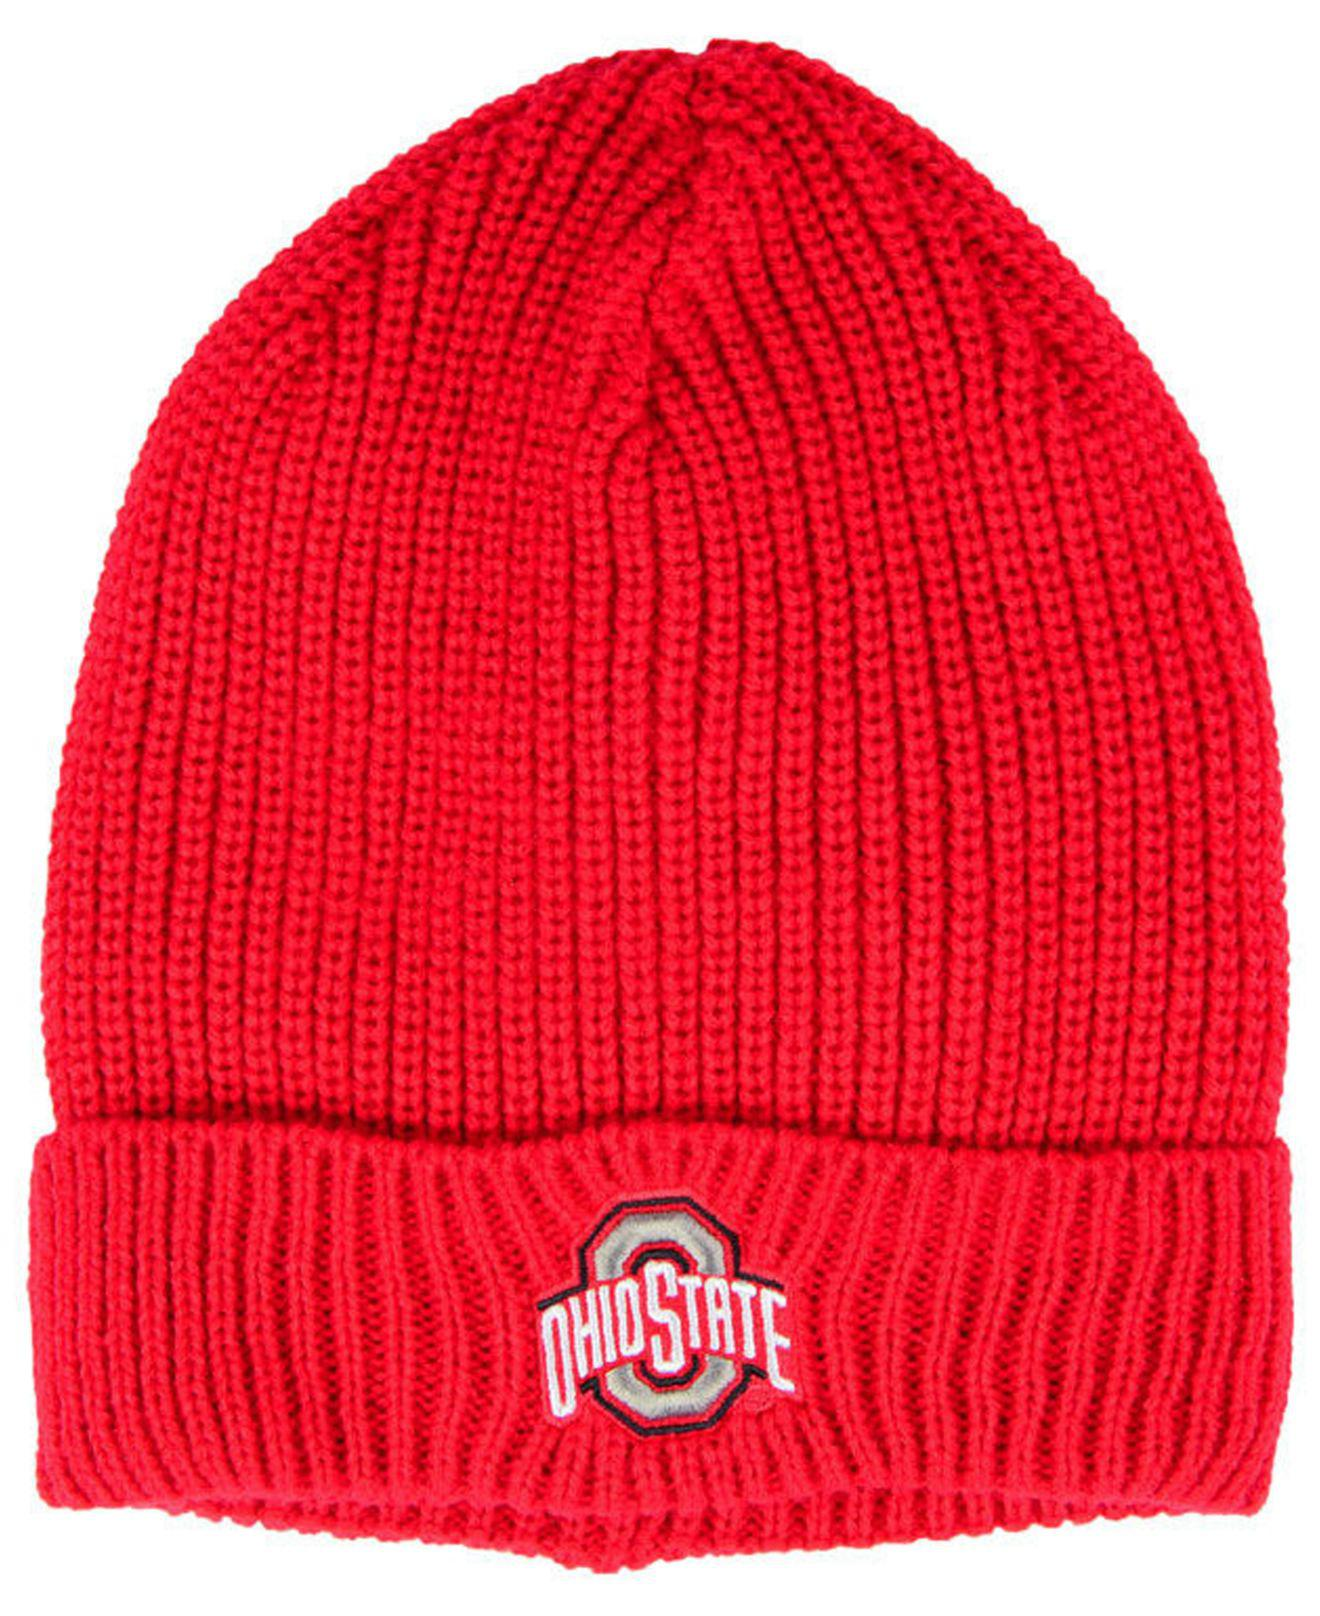 c4a3ad0fa24 ... coupon code nike knitted hat with wide ribbed brim download 6bfba 0a26e